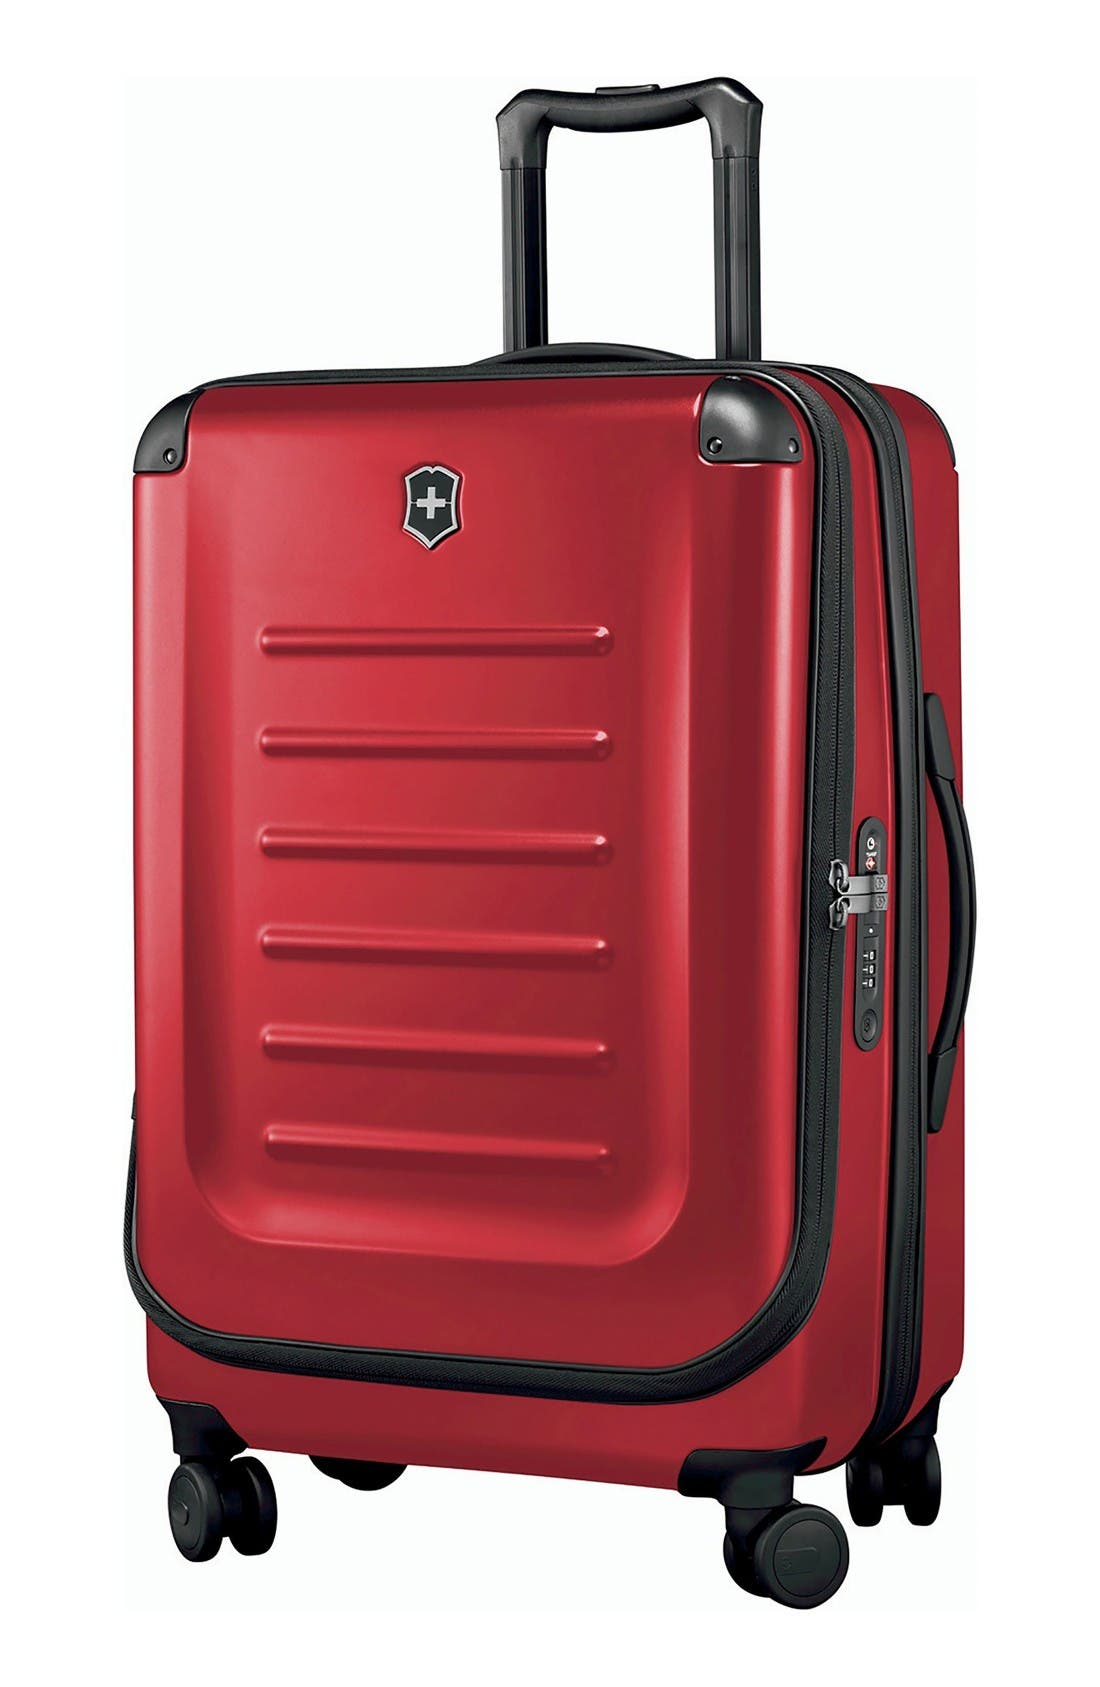 Victorinox Swiss Army® Spectra 2.0 27 Inch Hard Sided Rolling Travel Suitcase